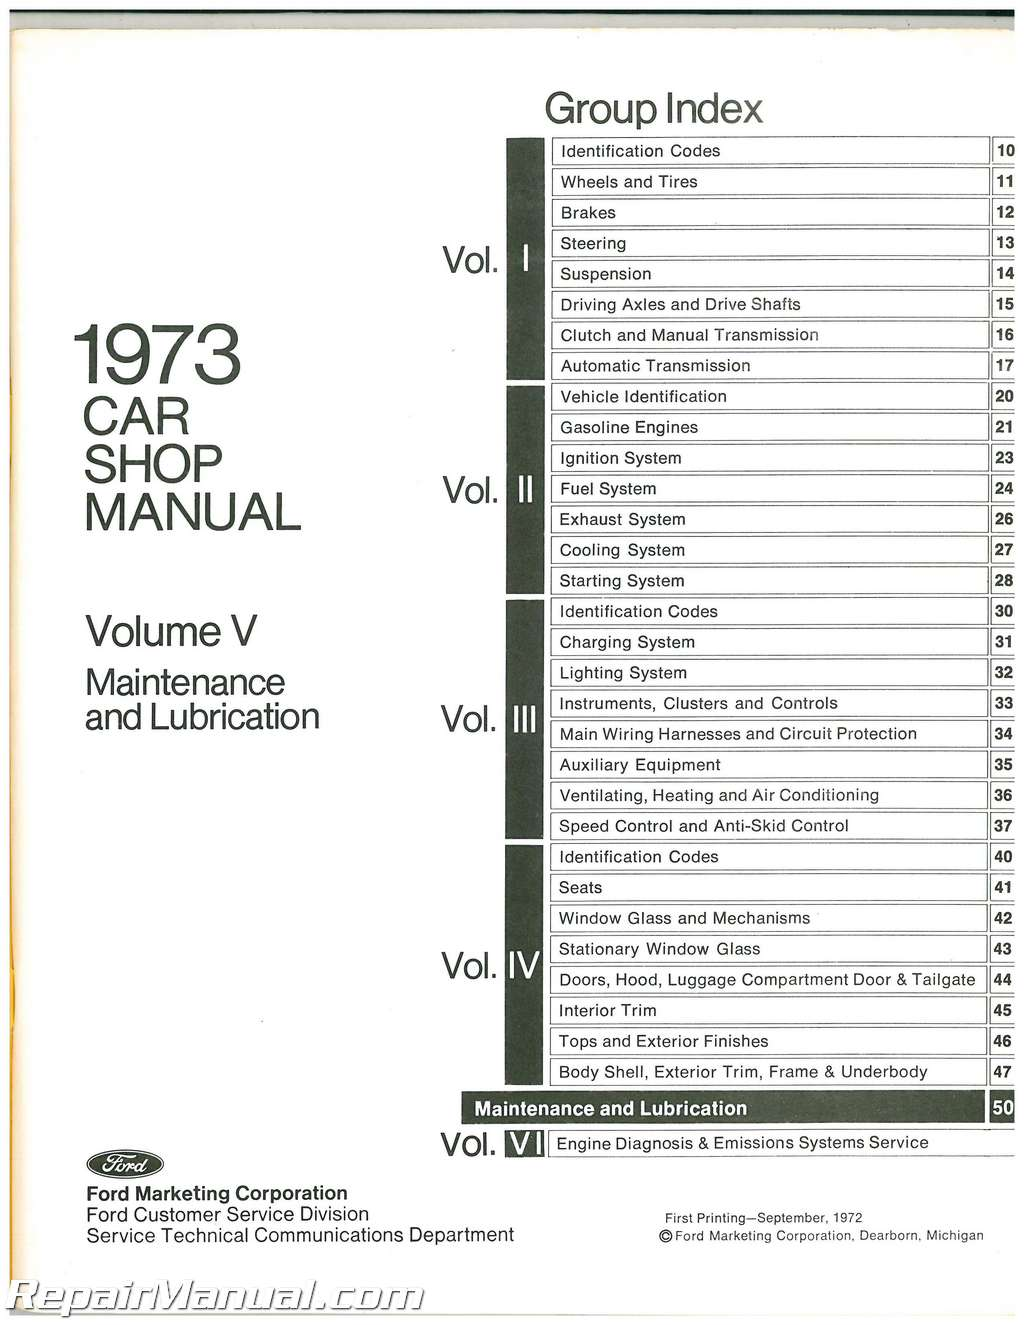 Used 1973 Ford Car Shop Manual Volume 5 Pre-Delivery